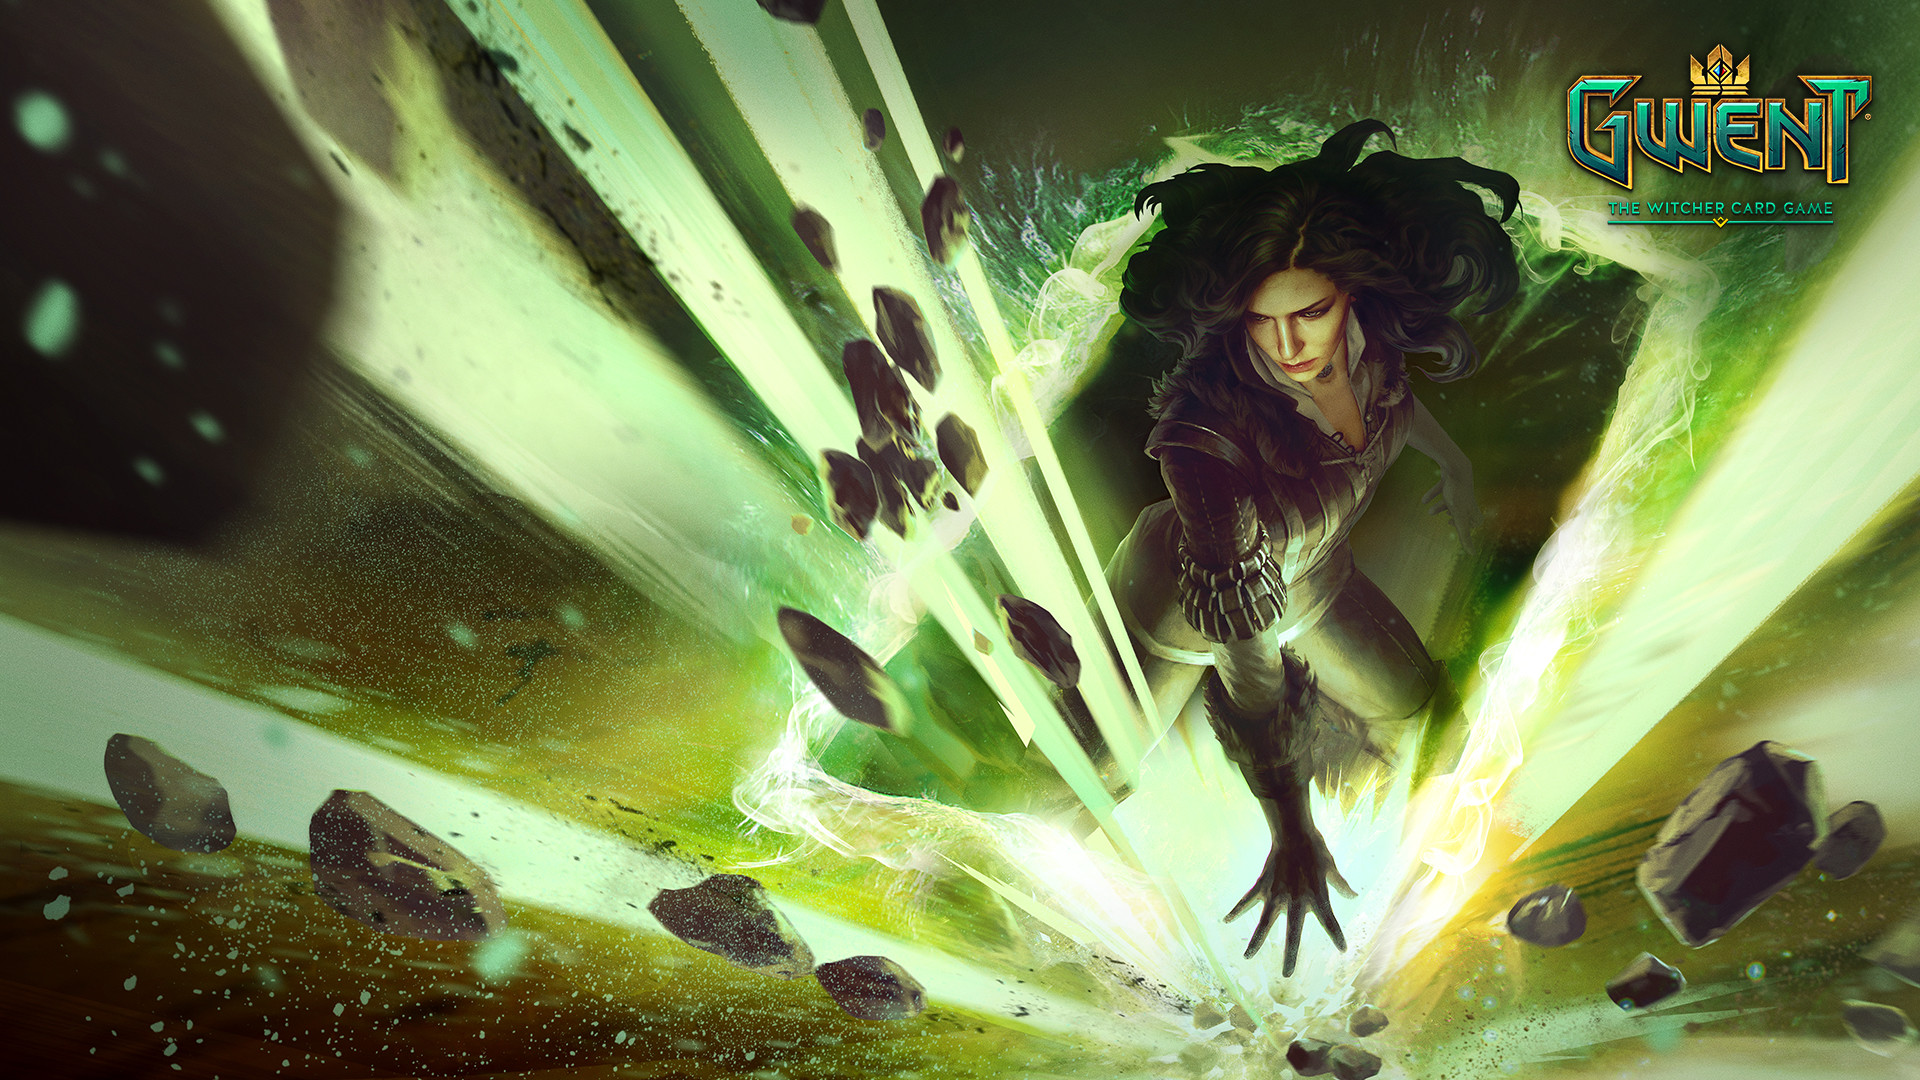 Where The Wild Things Are Wallpaper Hd Cd Projekt Red To Hold Gwent Update Stream On October 30